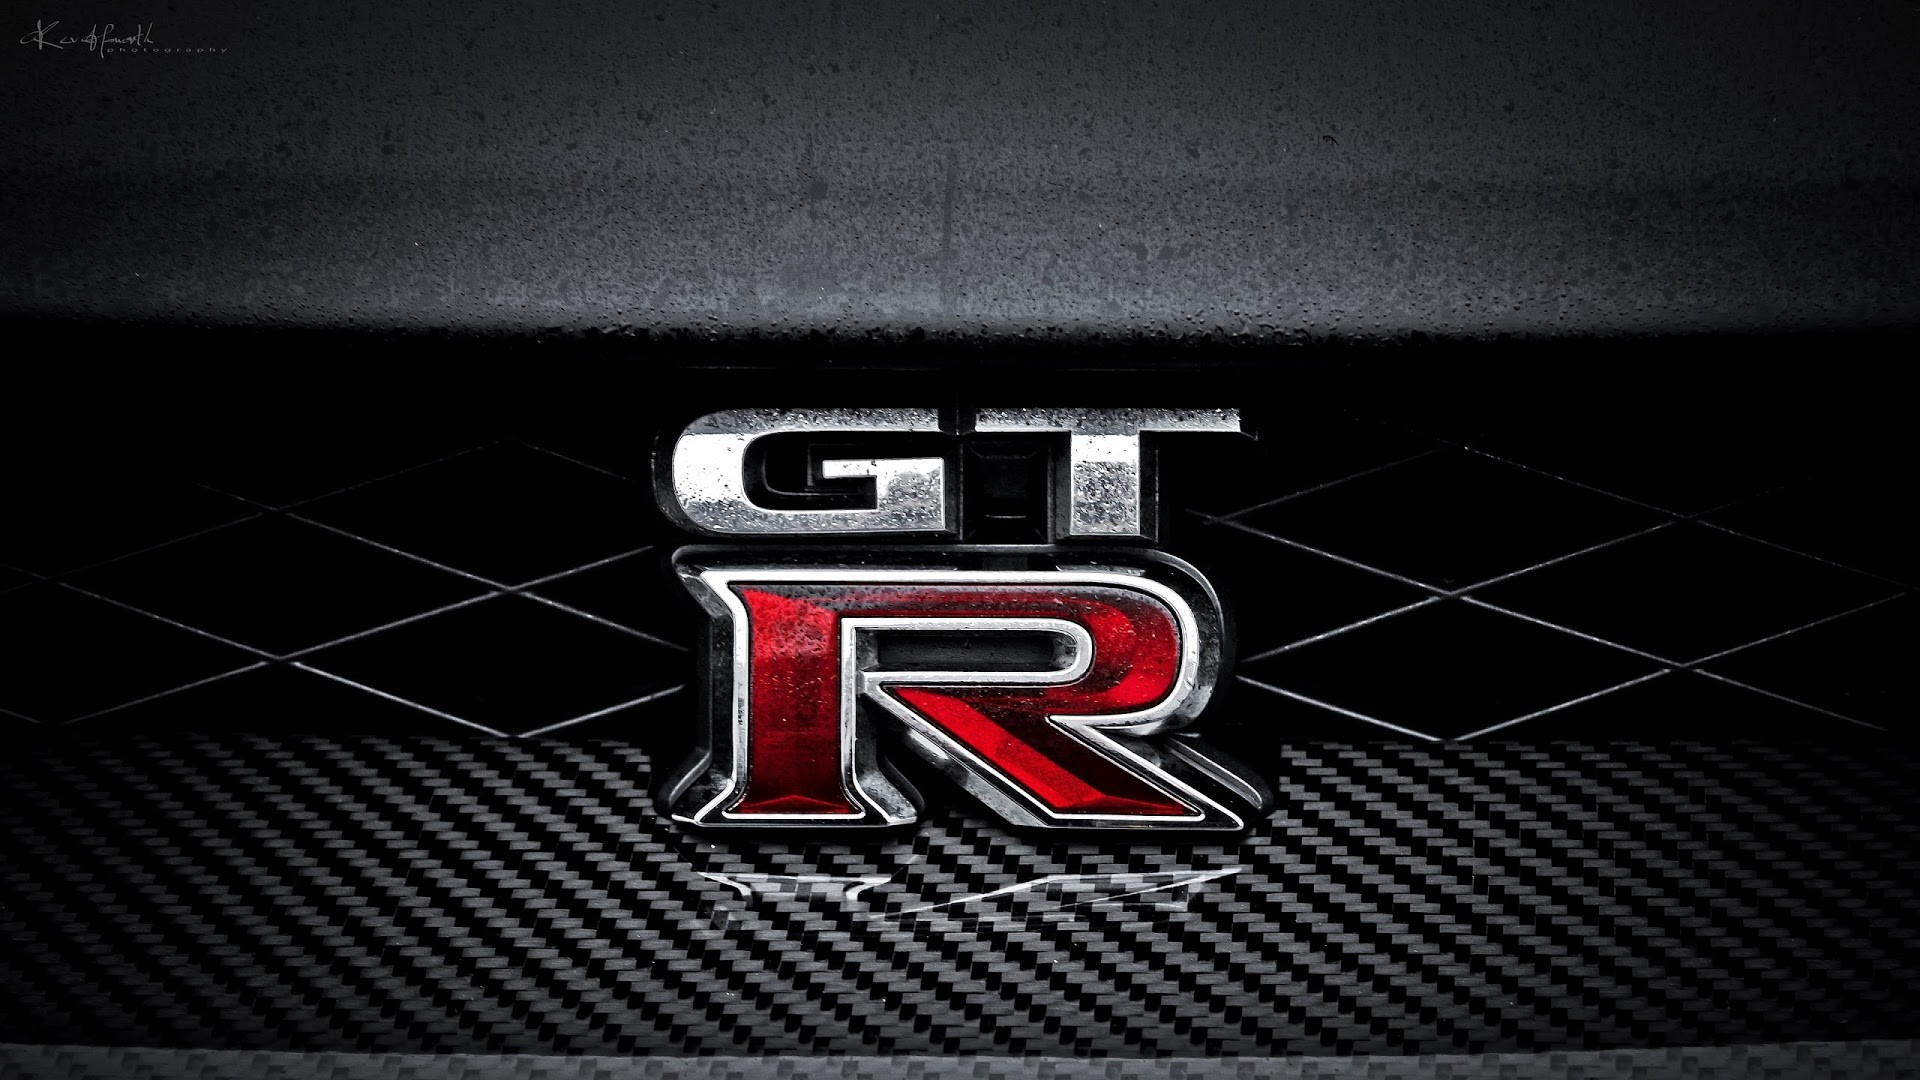 4K HD Wallpaper: Nissan GTR Logo